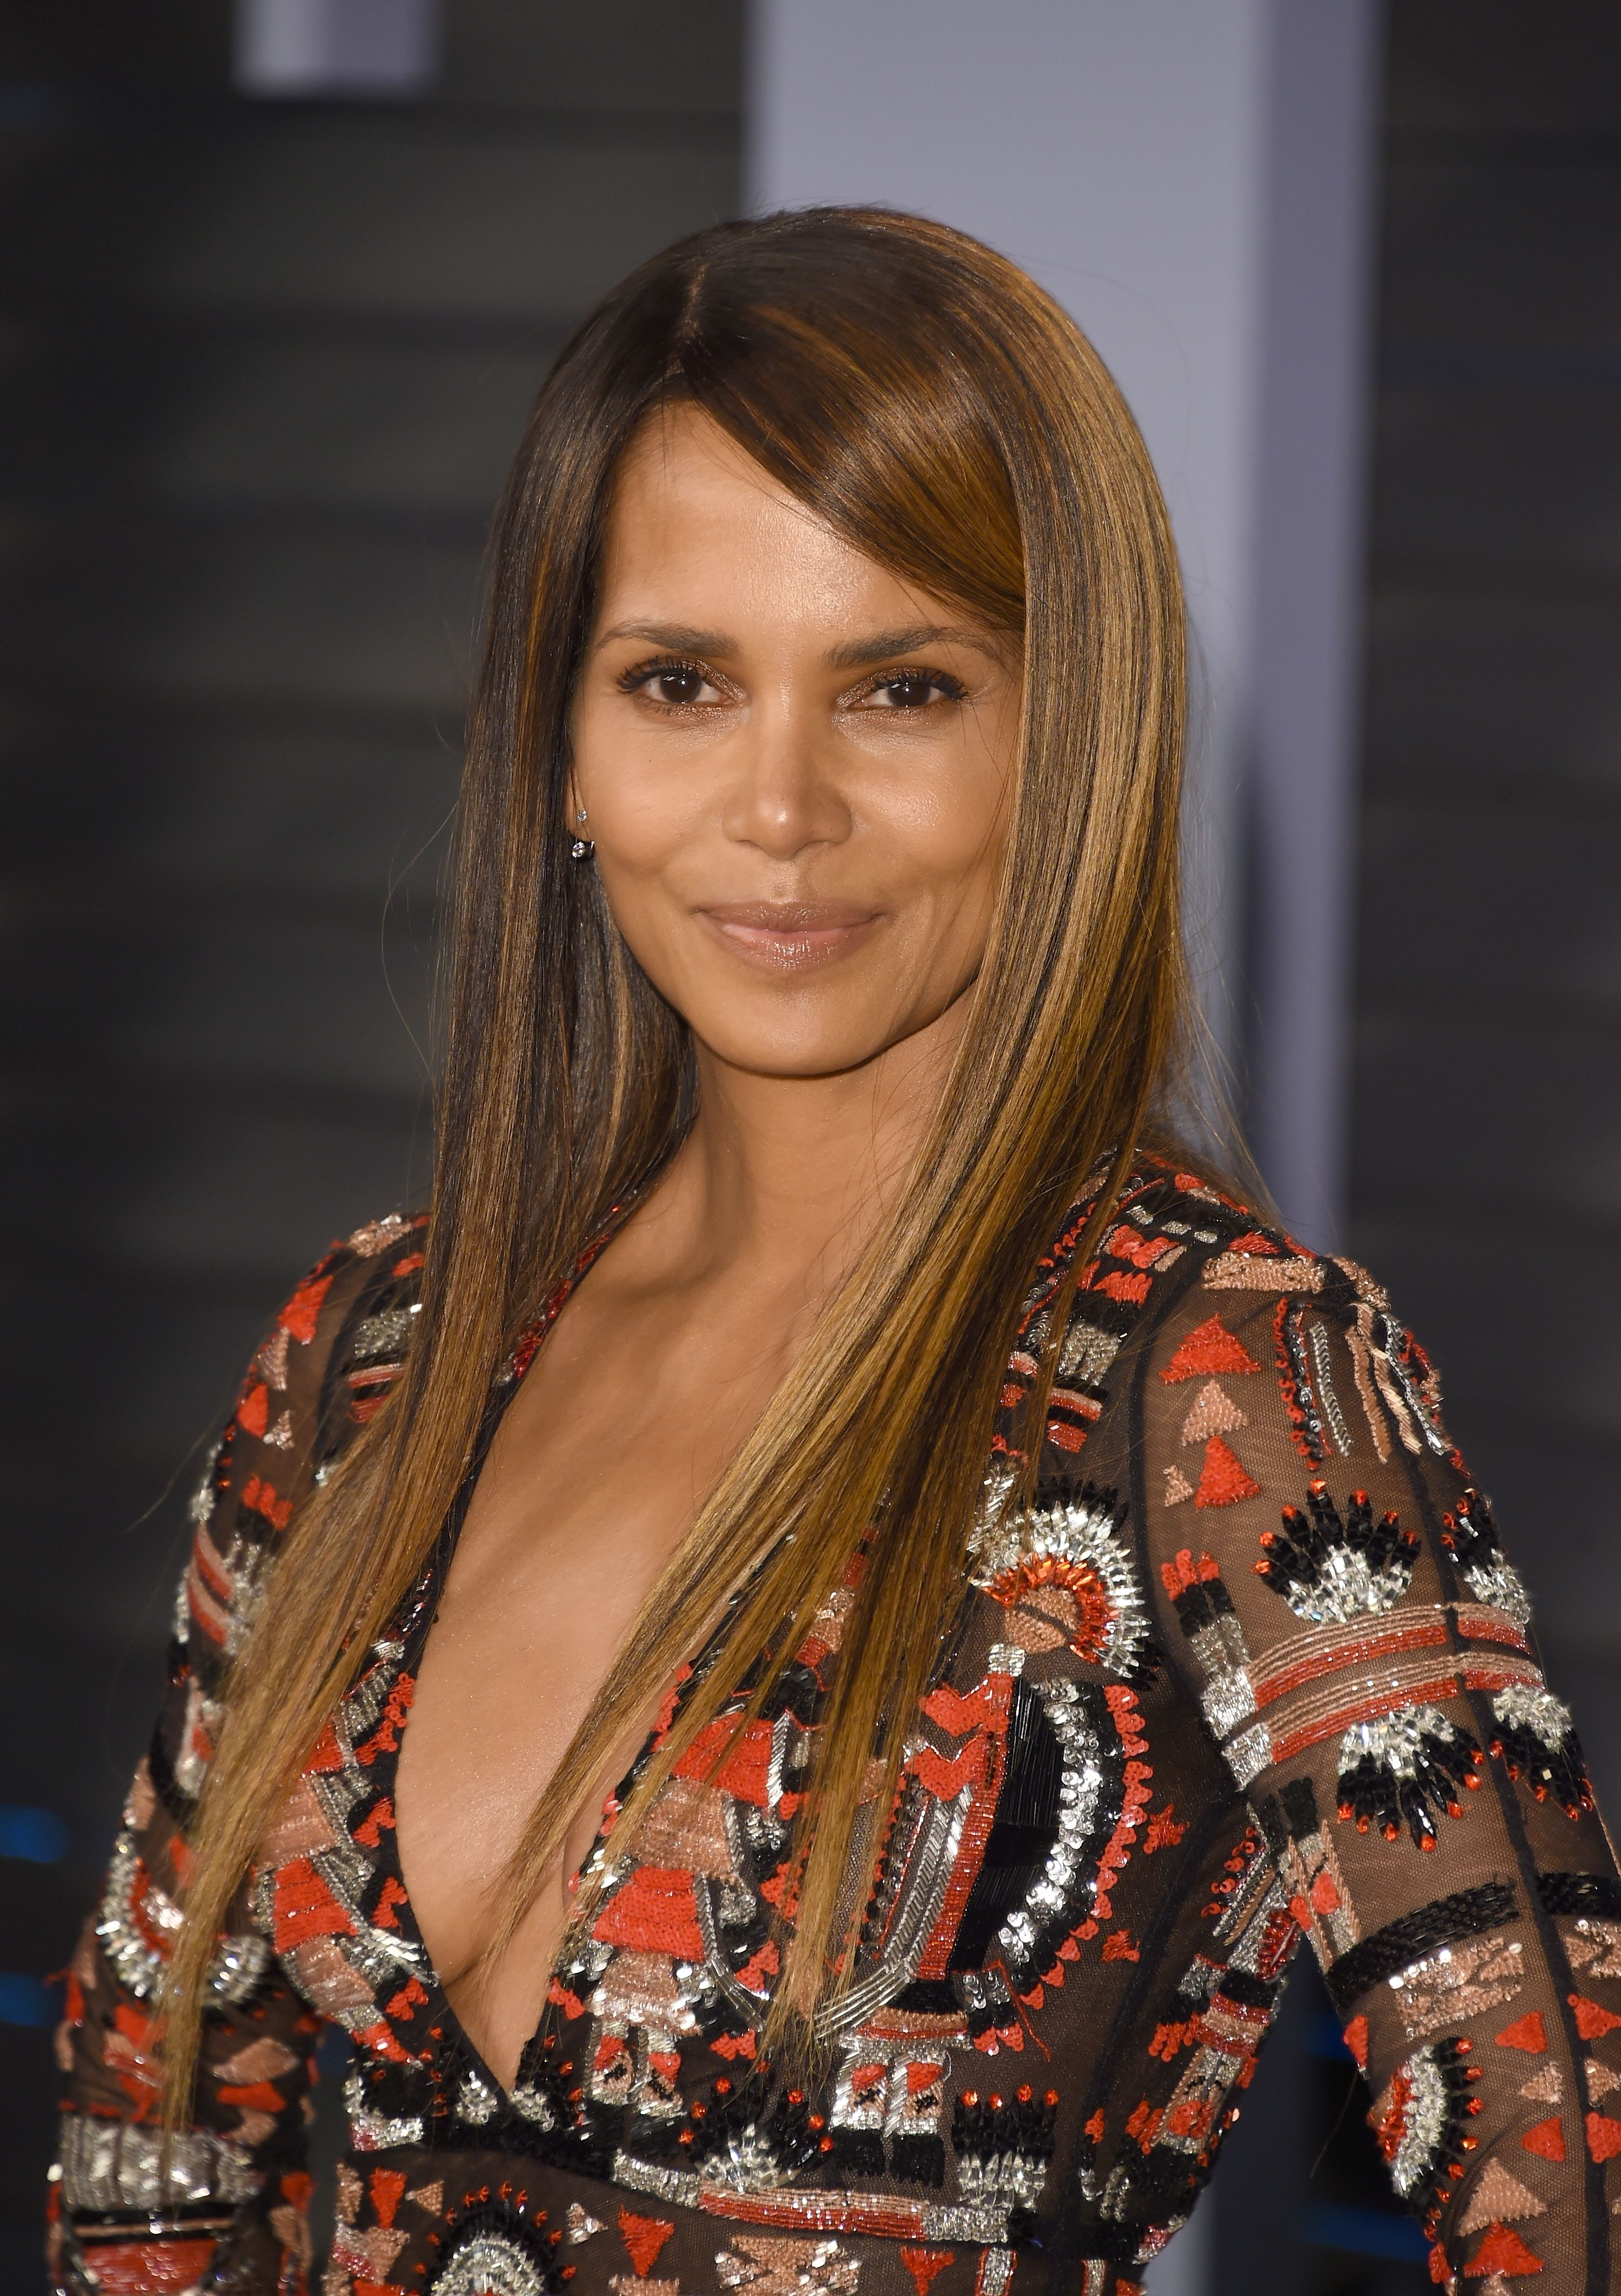 Actress Halle Berry at the 2018 Vanity Fair Oscar party hosted by Radhika Jones at the Wallis Annenberg Center for the Performing Arts on March 4, 2018 | Photo: Getty Images